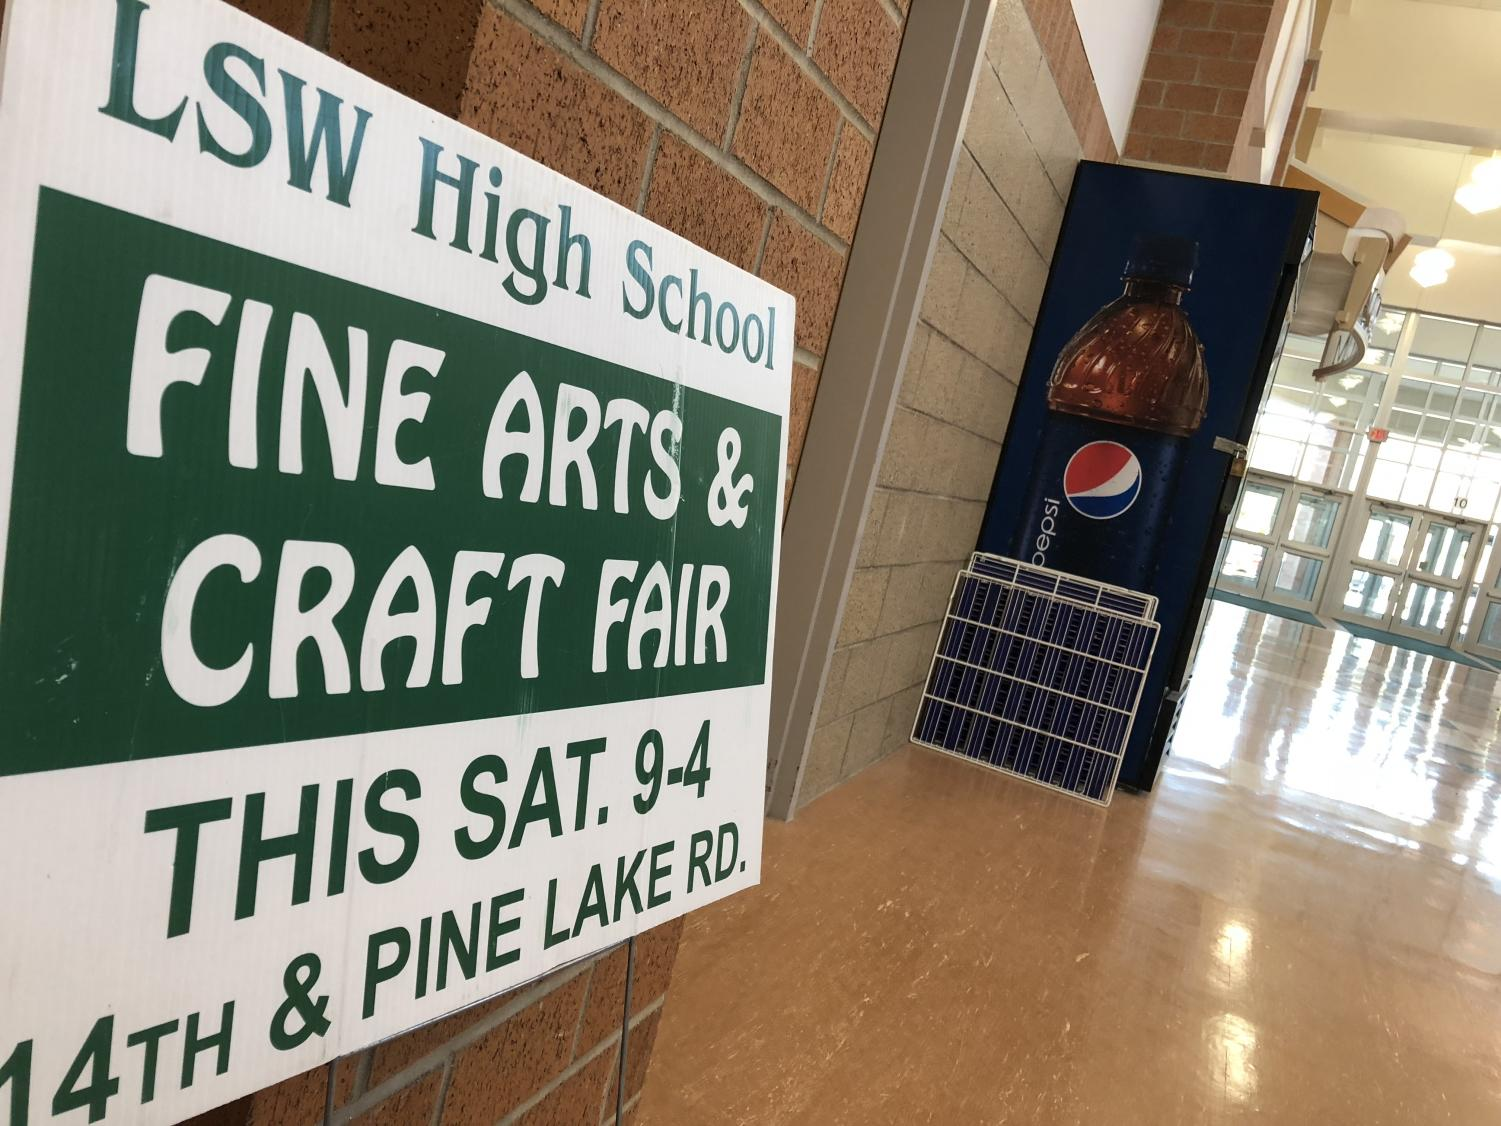 On Saturday, Oct. 27, Lincoln Southwest High School will be holding the 17th Fine Arts and Crafts Fair.